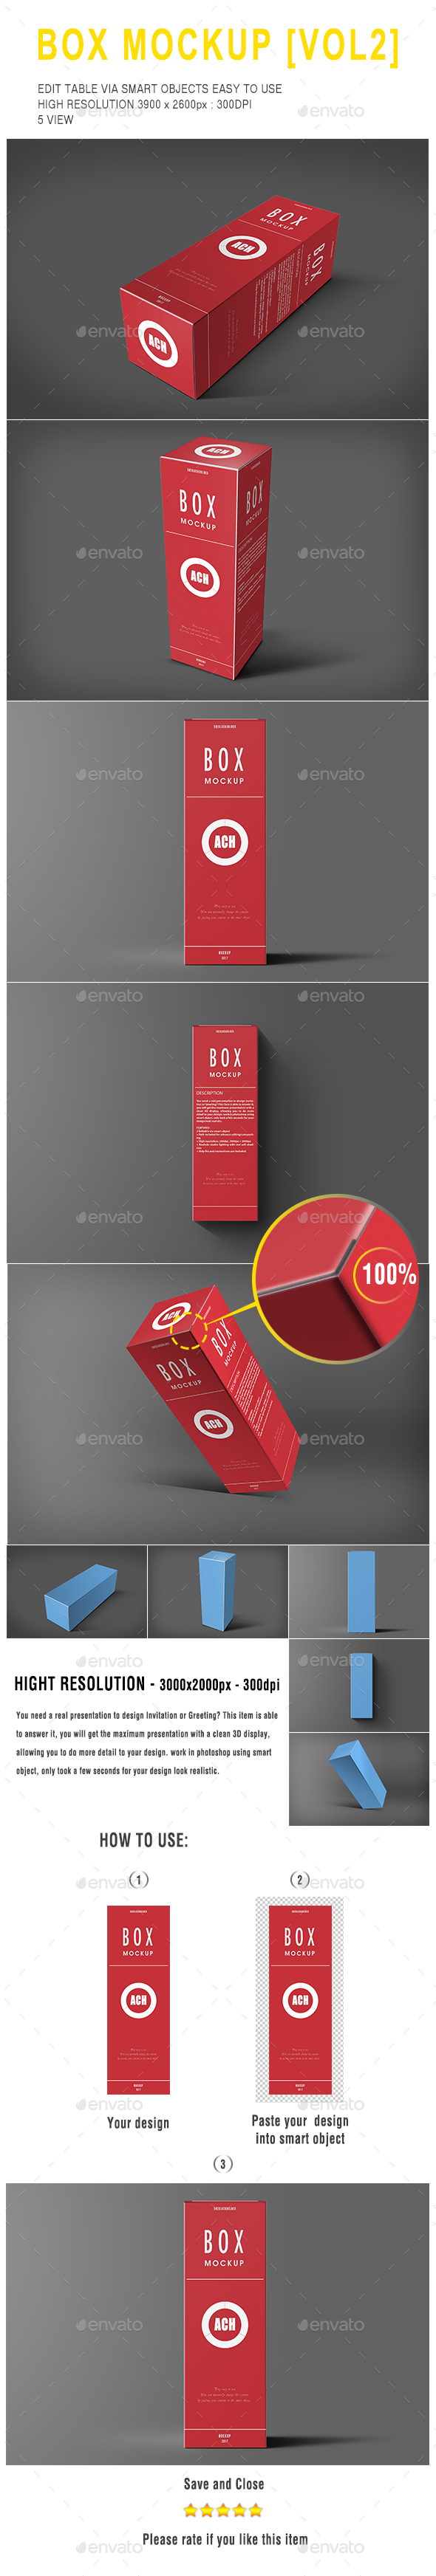 Box Mockup [Vol 2] - Packaging Product Mock-Ups